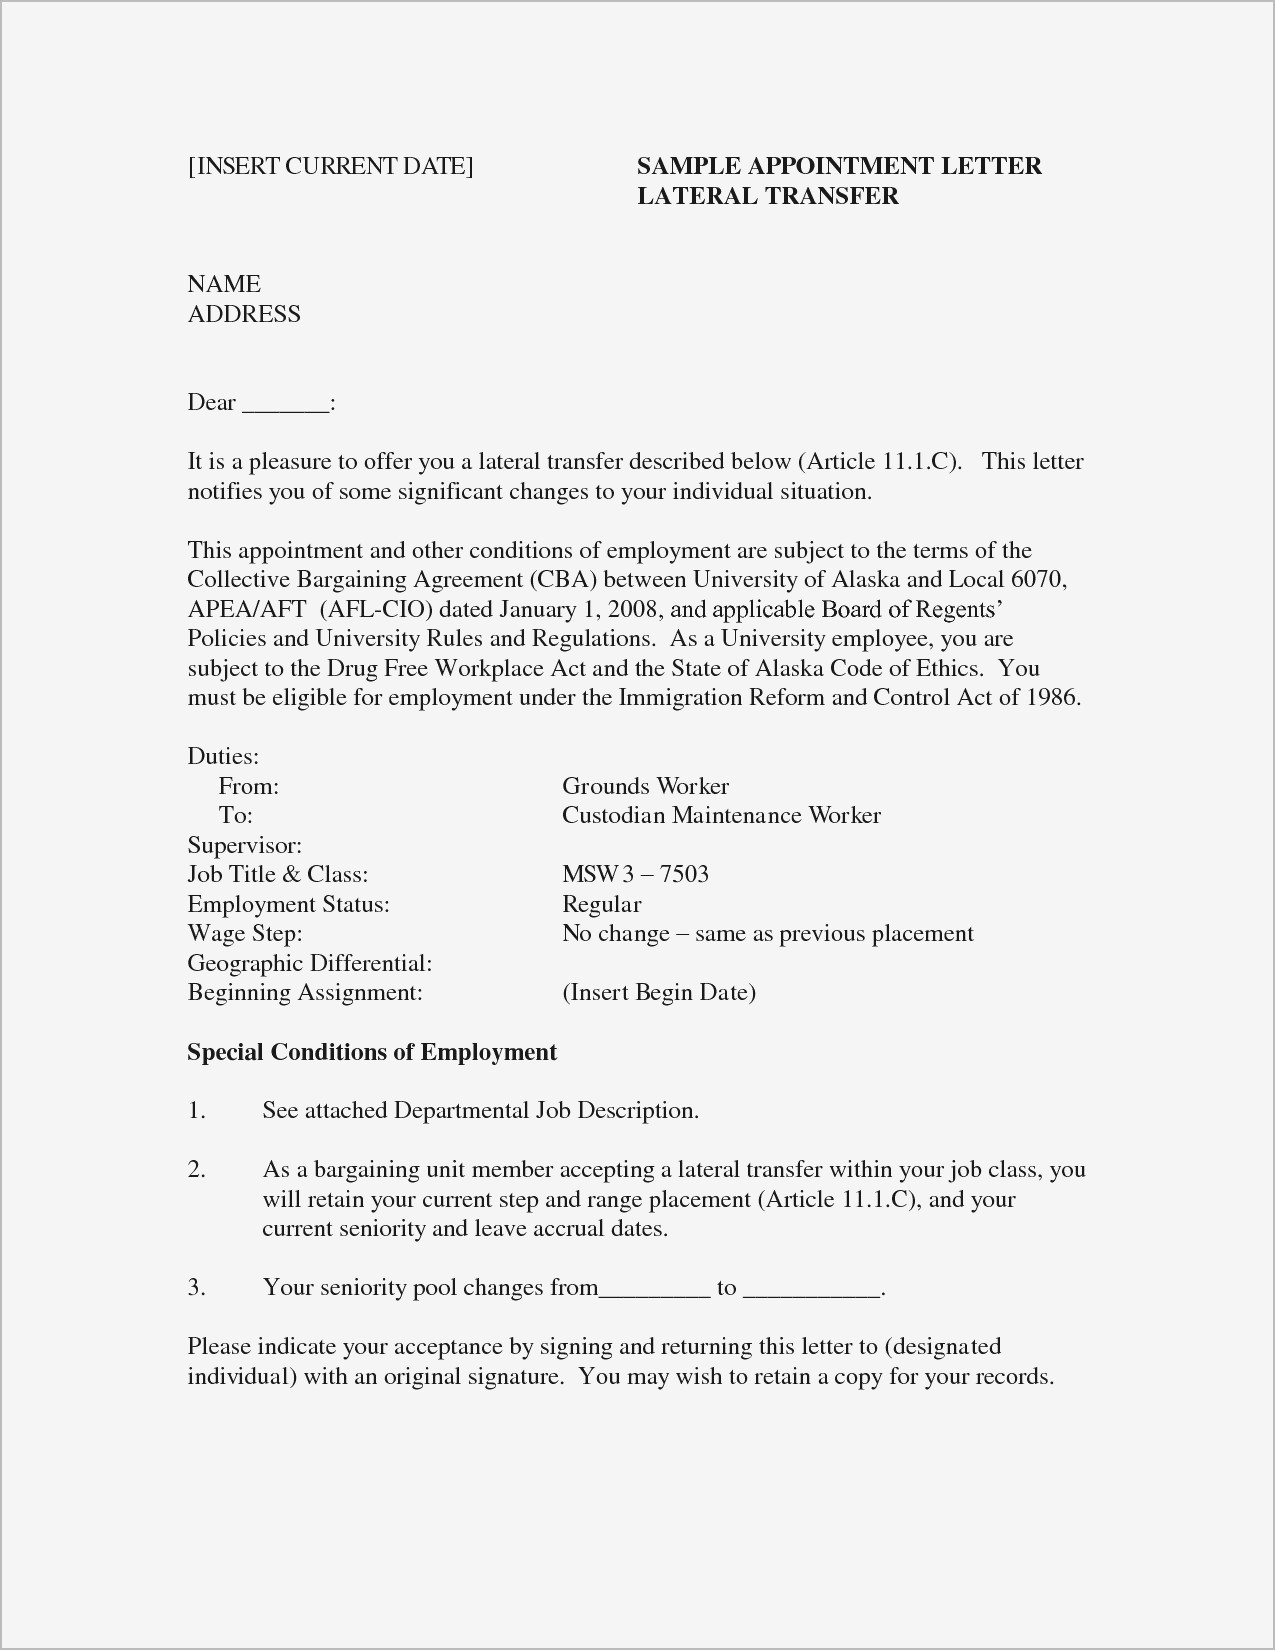 Usa Jobs Cover Letter Template - Cover Letter Sample for Usa Jobs Valid Job Fer Letter Template Us